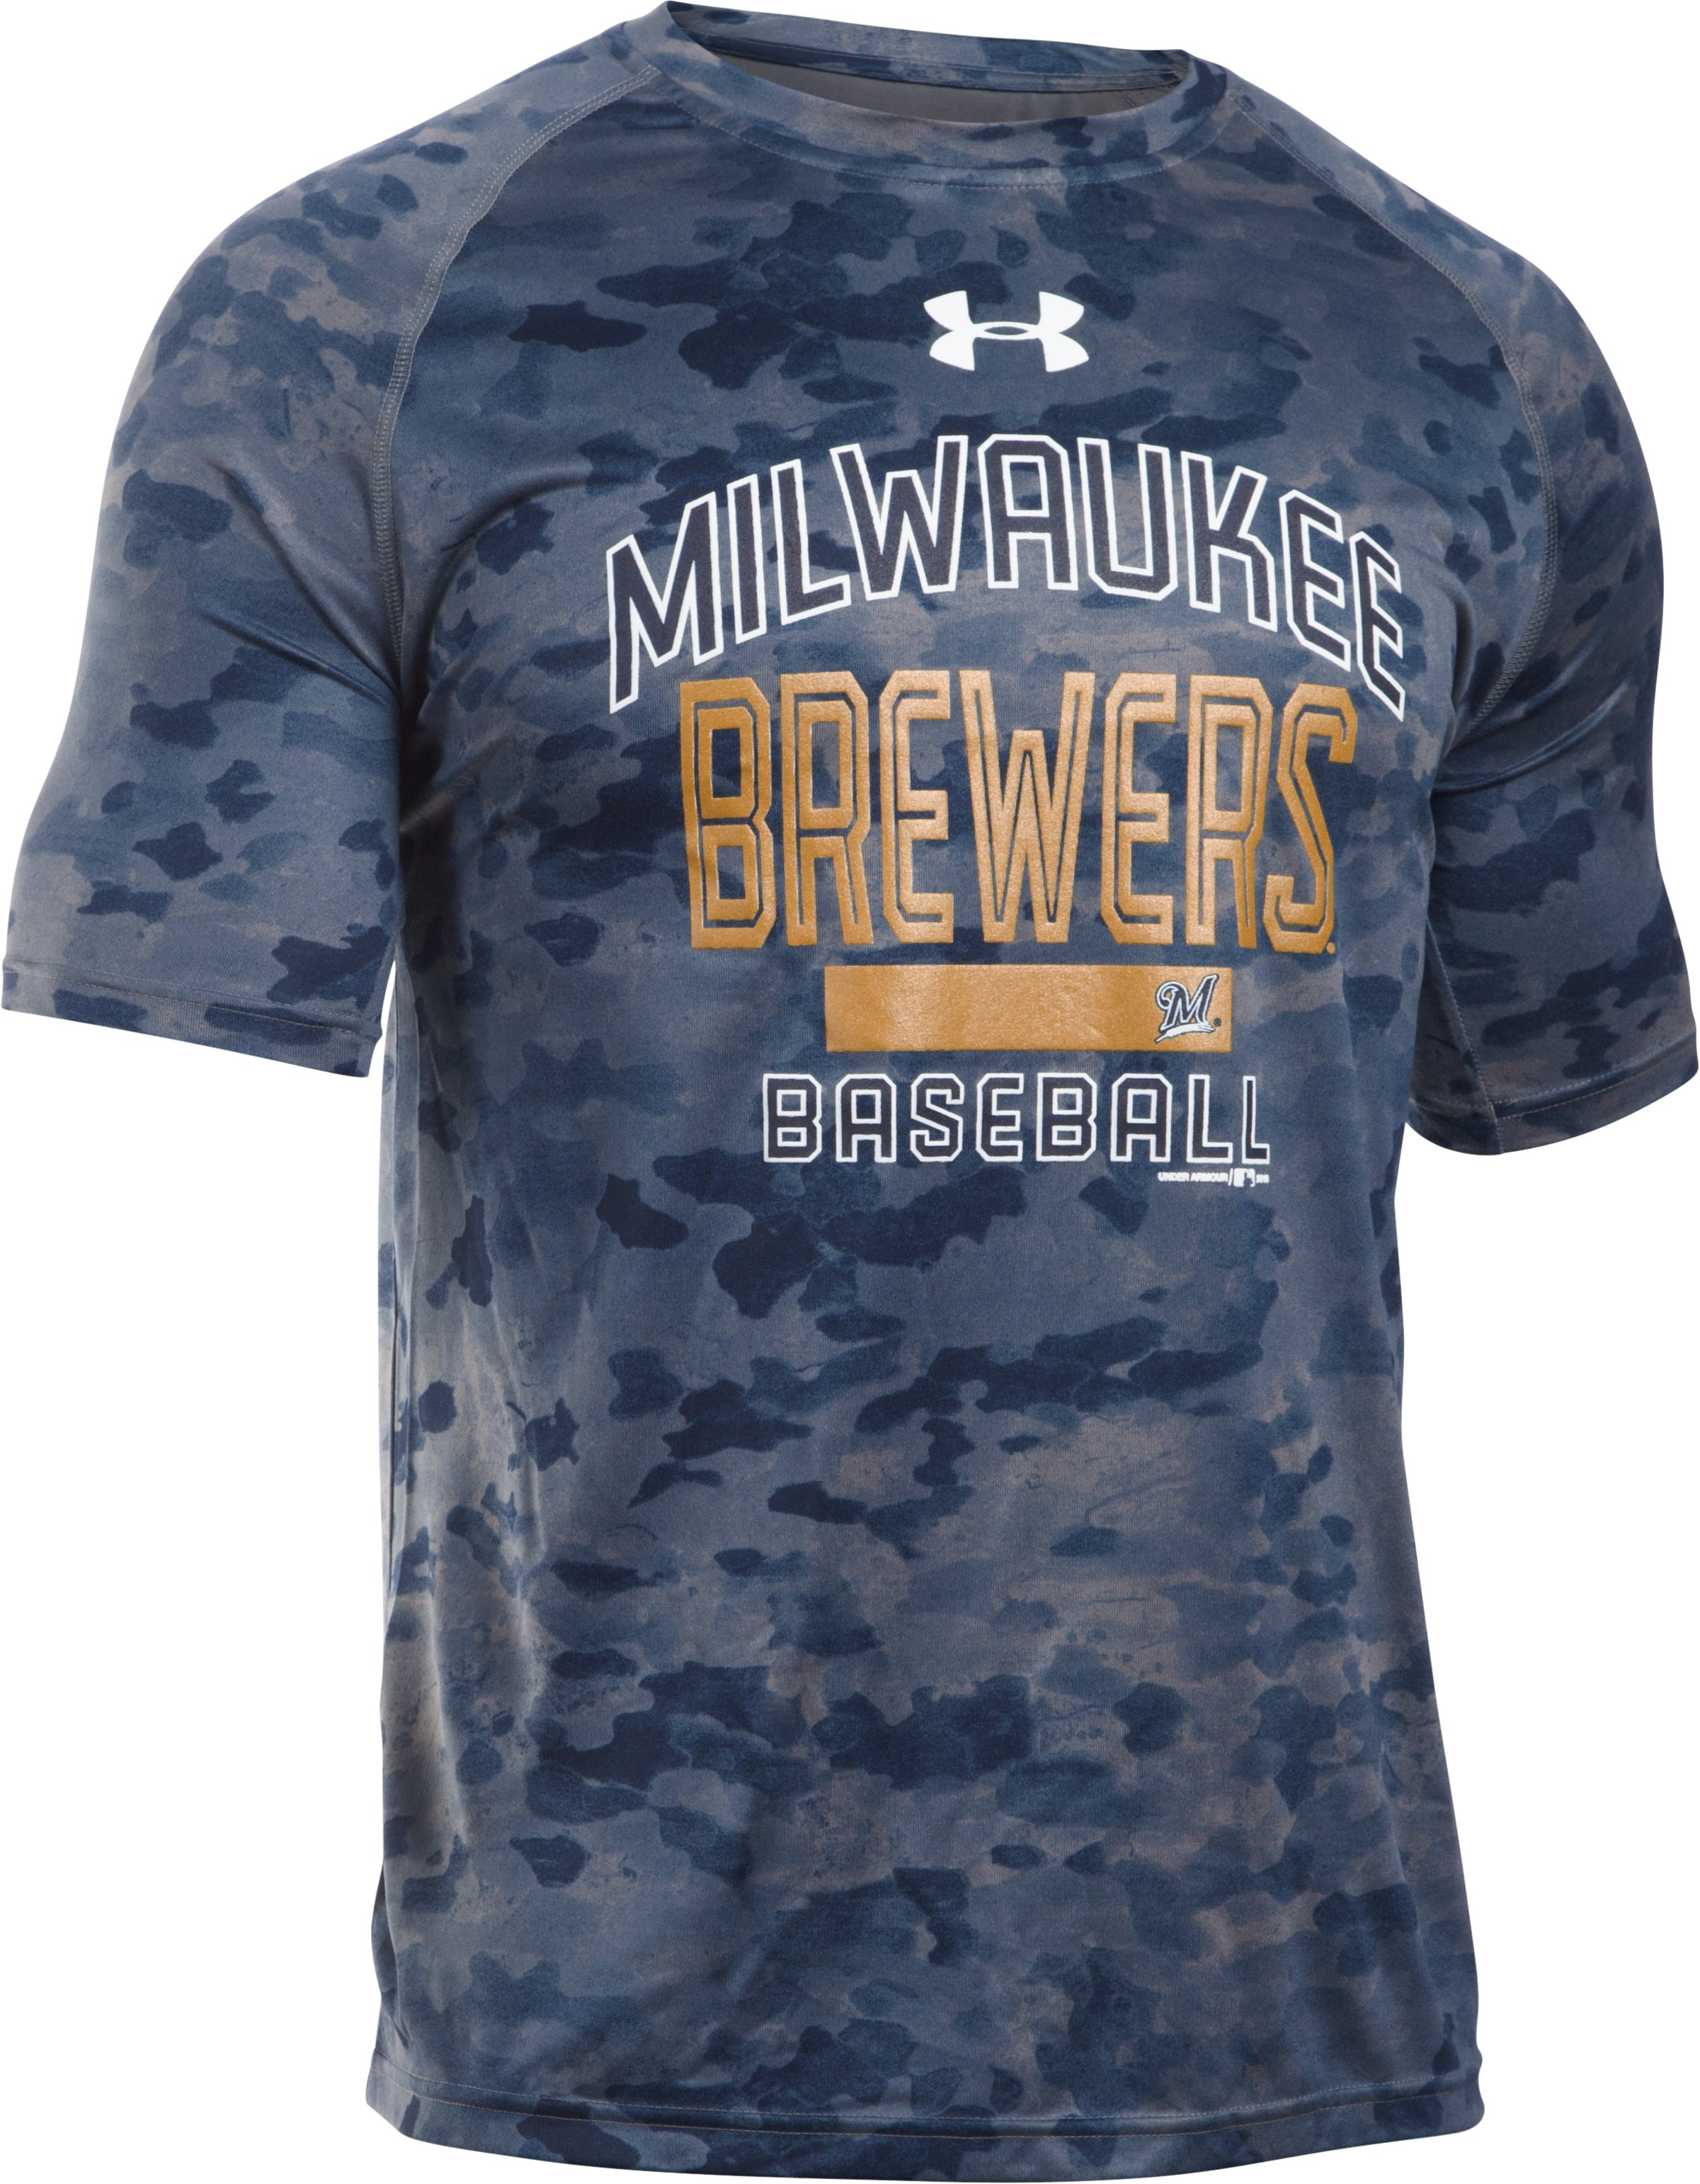 Men's Milwaukee Brewers Camo Tech™ T-Shirt, Midnight Navy